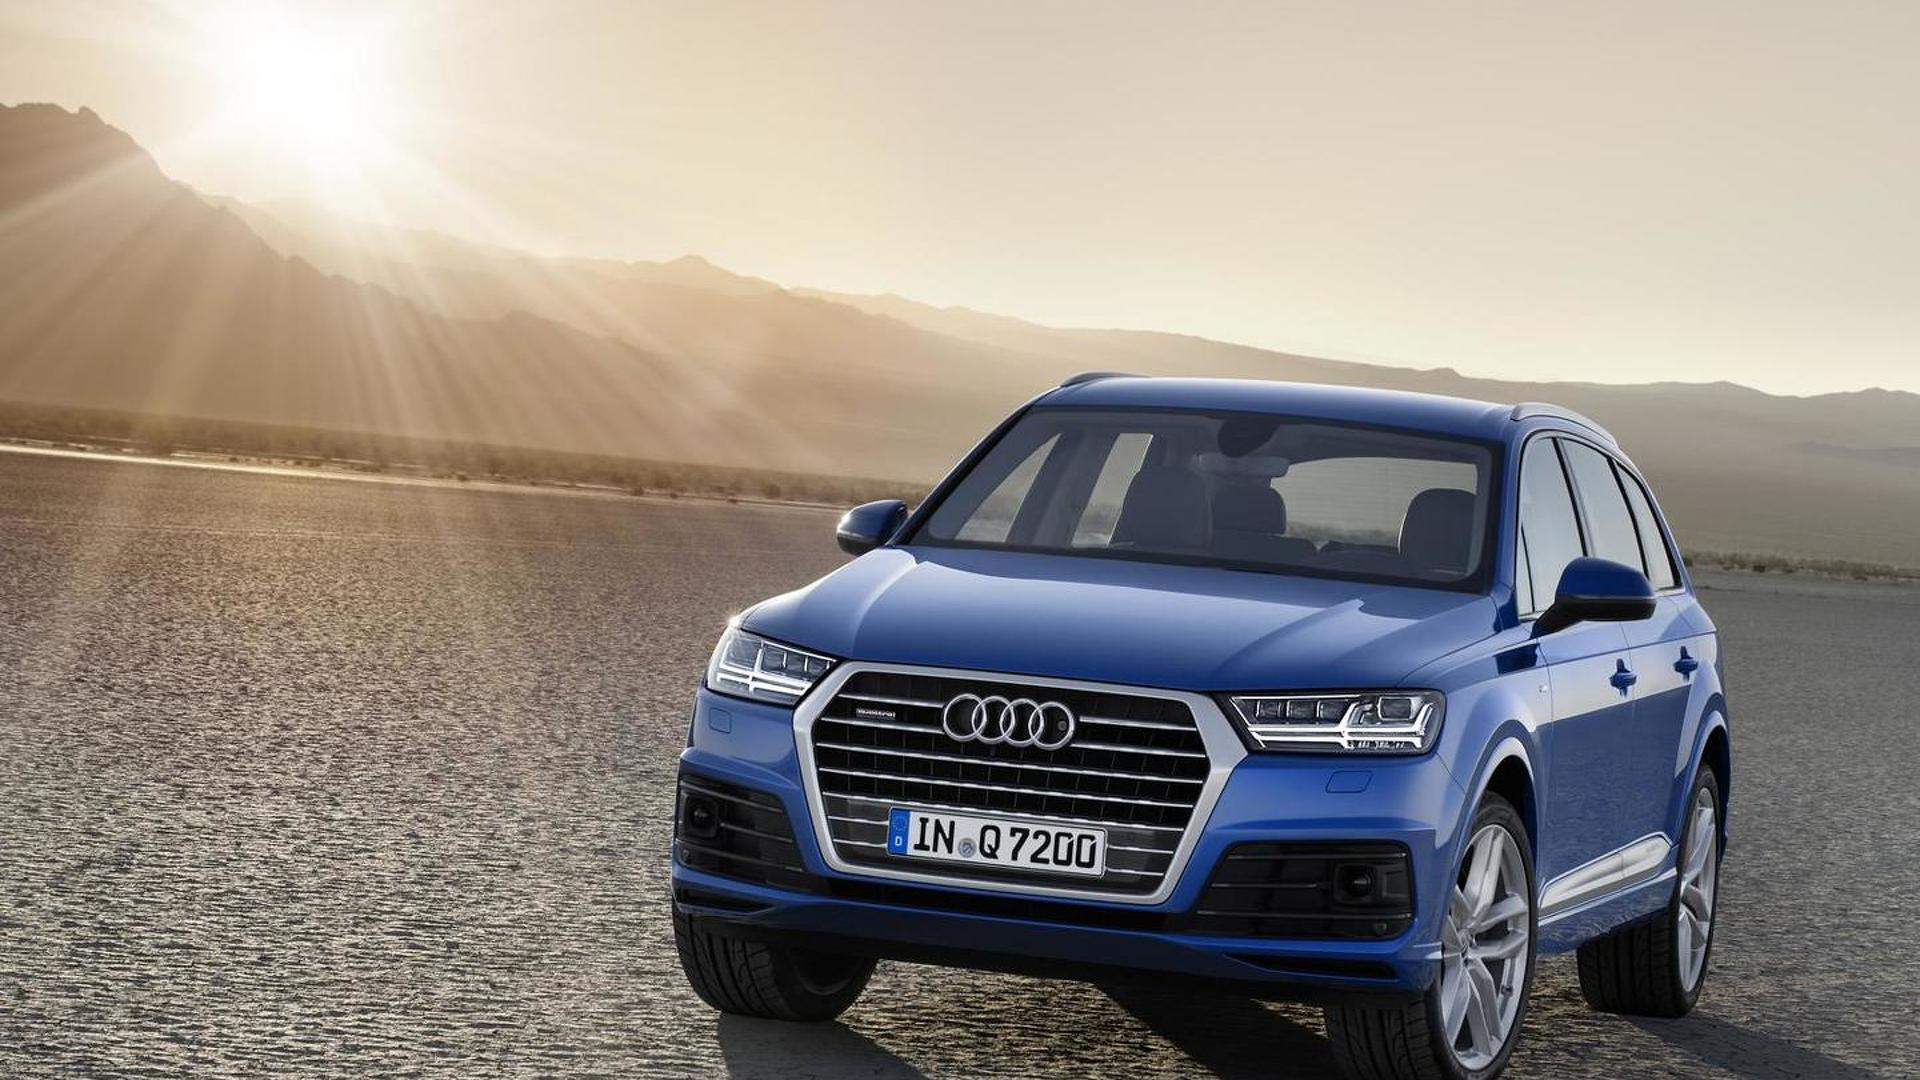 Second Generation Audi Q Goes Official With Kg Weight Loss - Audi official